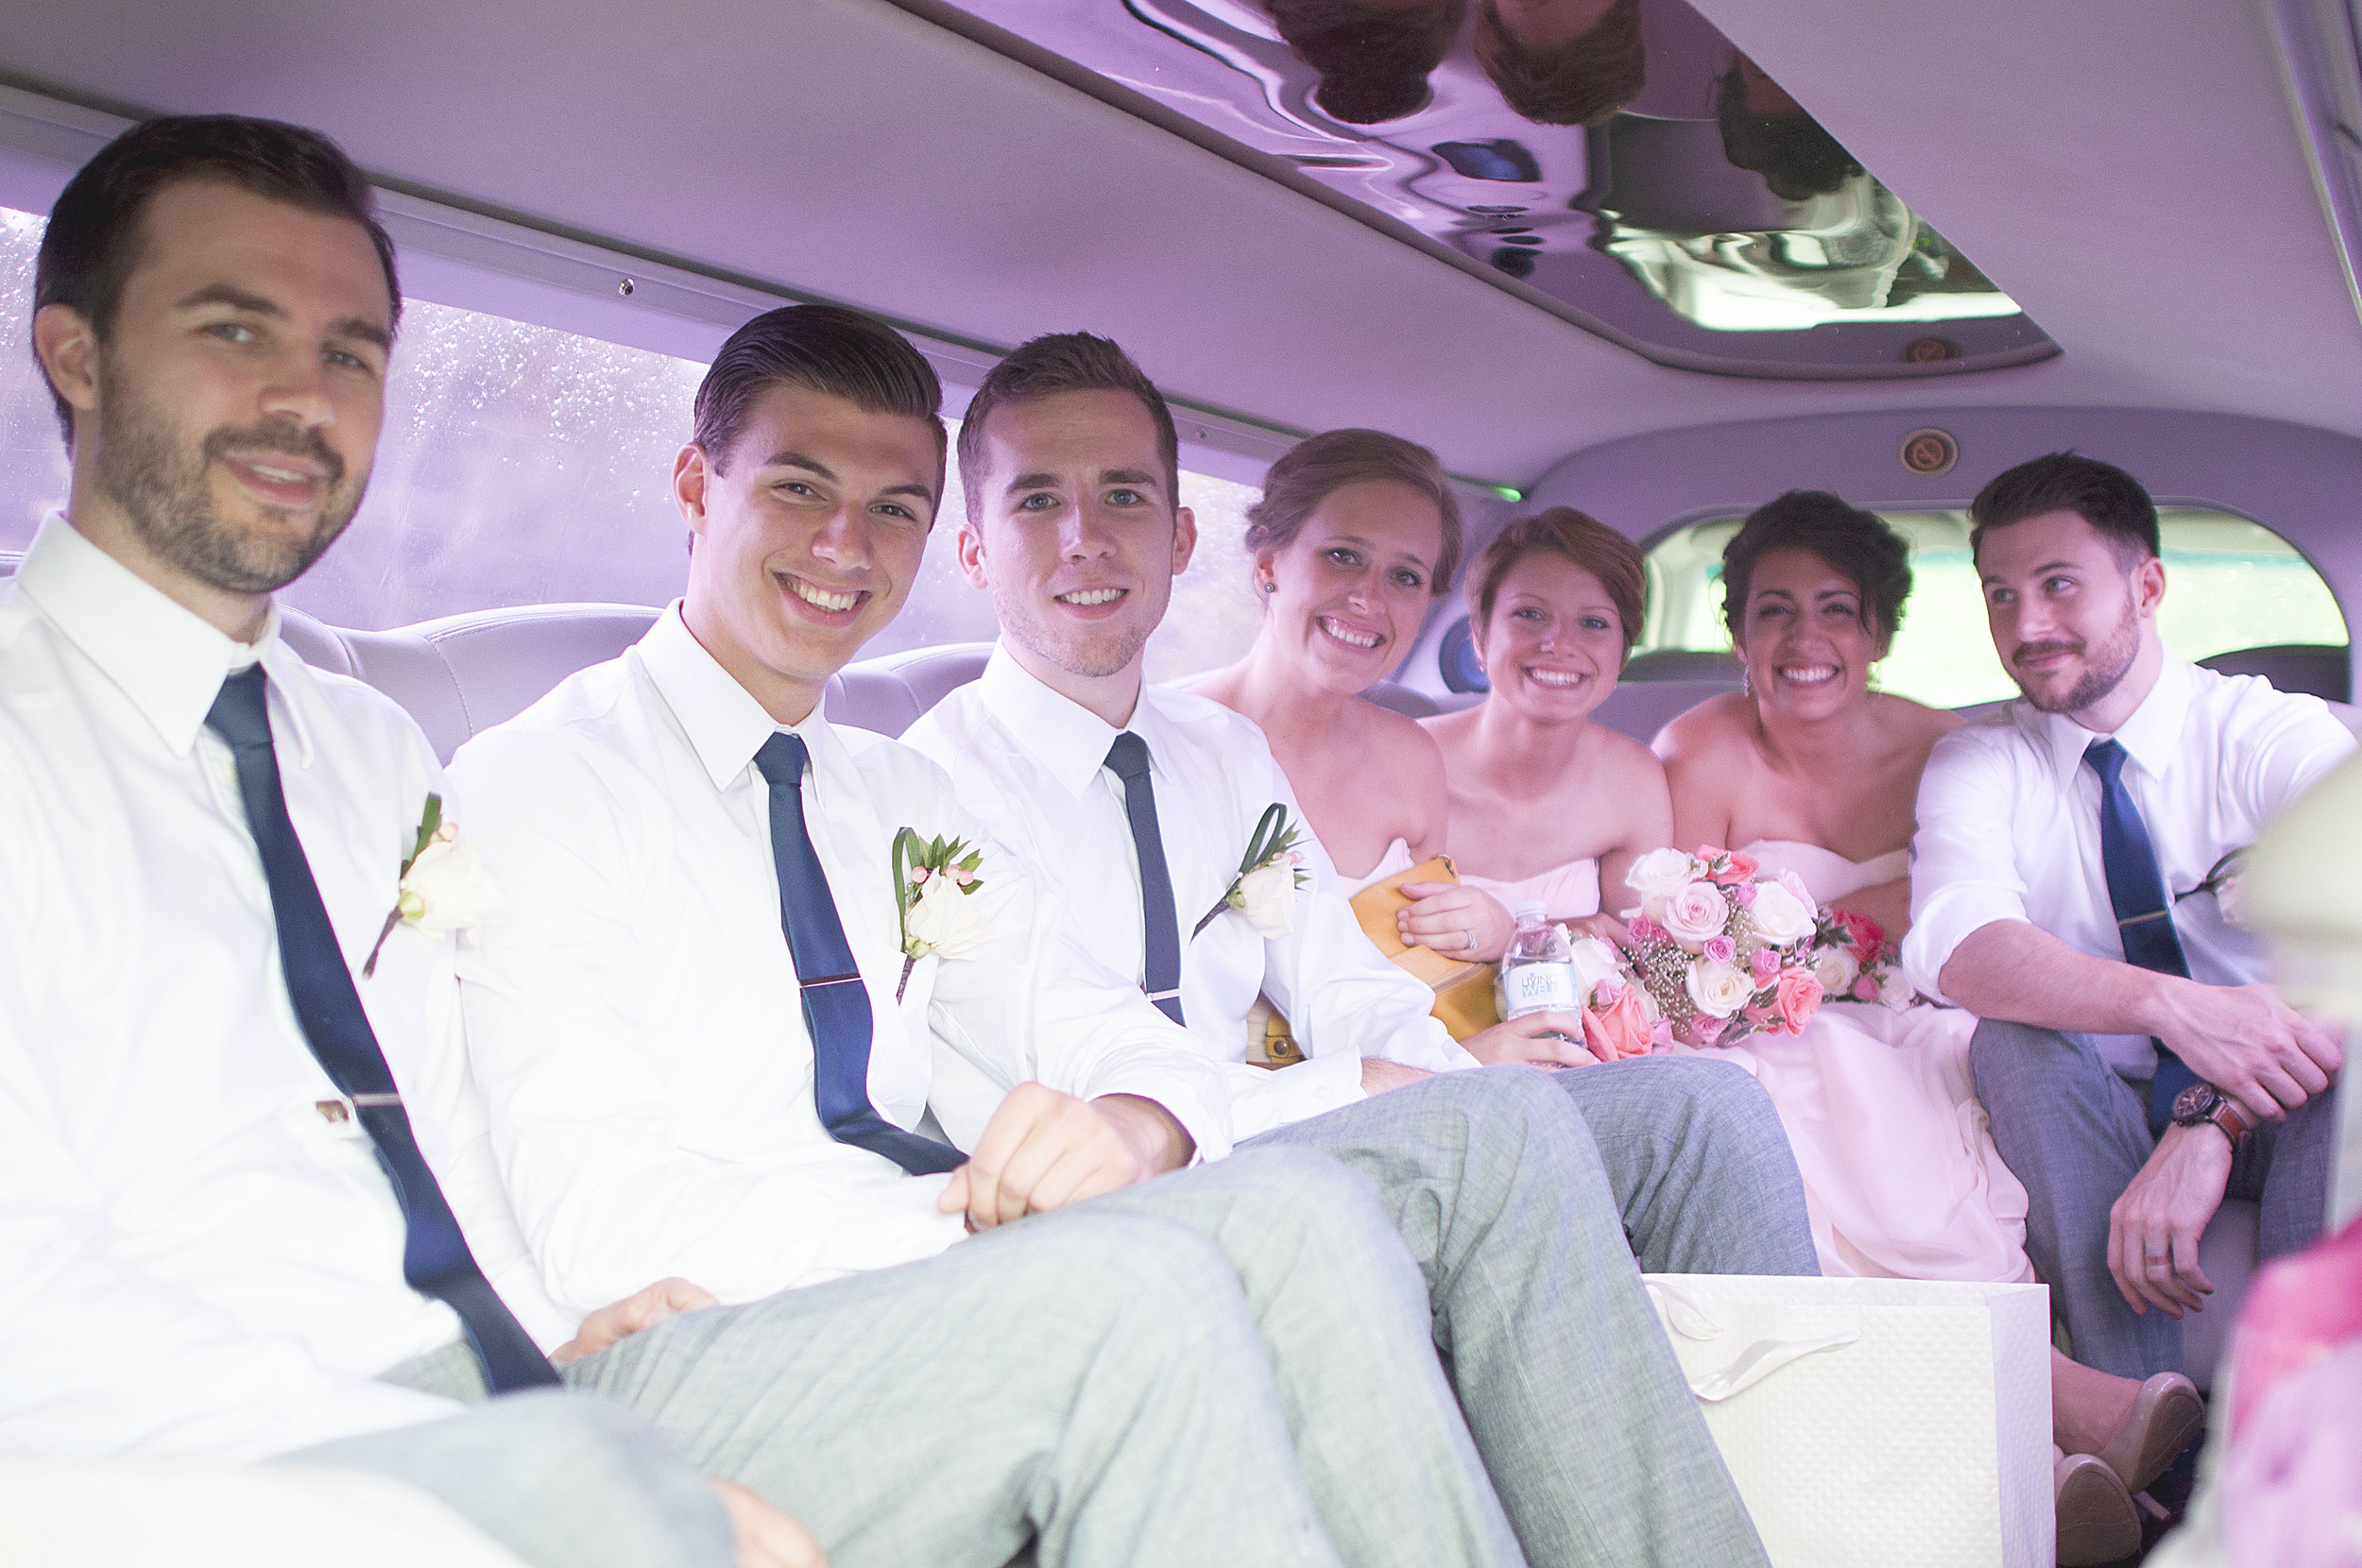 Holly was surprised with a limo ride to the reception! Unfortunately this was the point where an unexpected rainstorm begun.